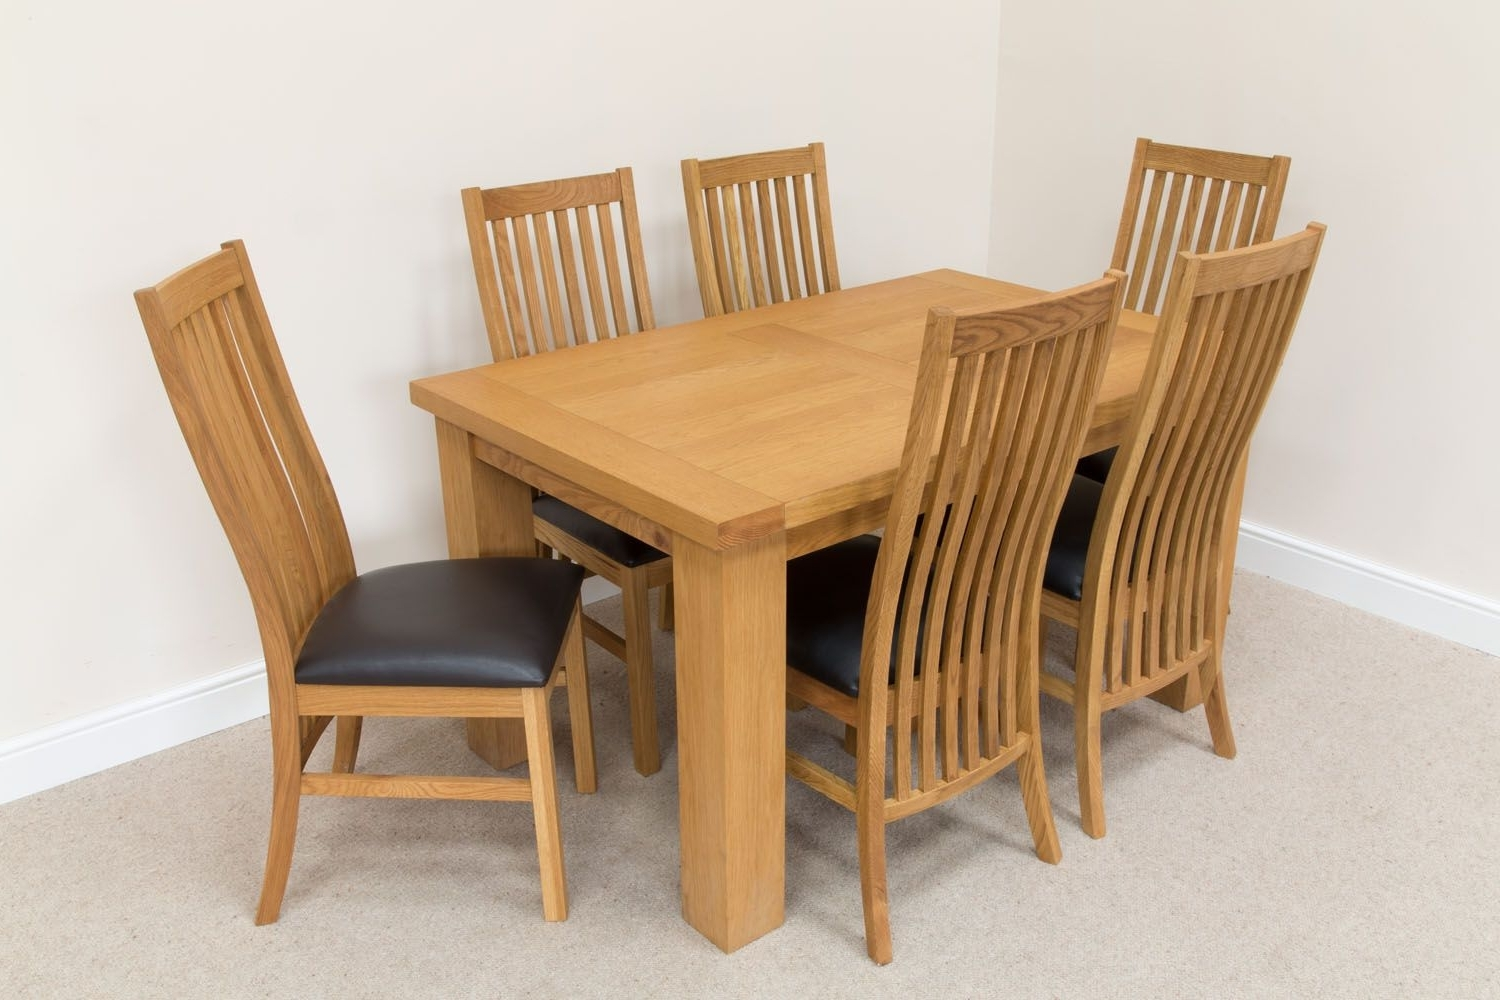 6 Seater Oak Dining Set Inside Well Liked Oak Dining Sets (Gallery 4 of 25)